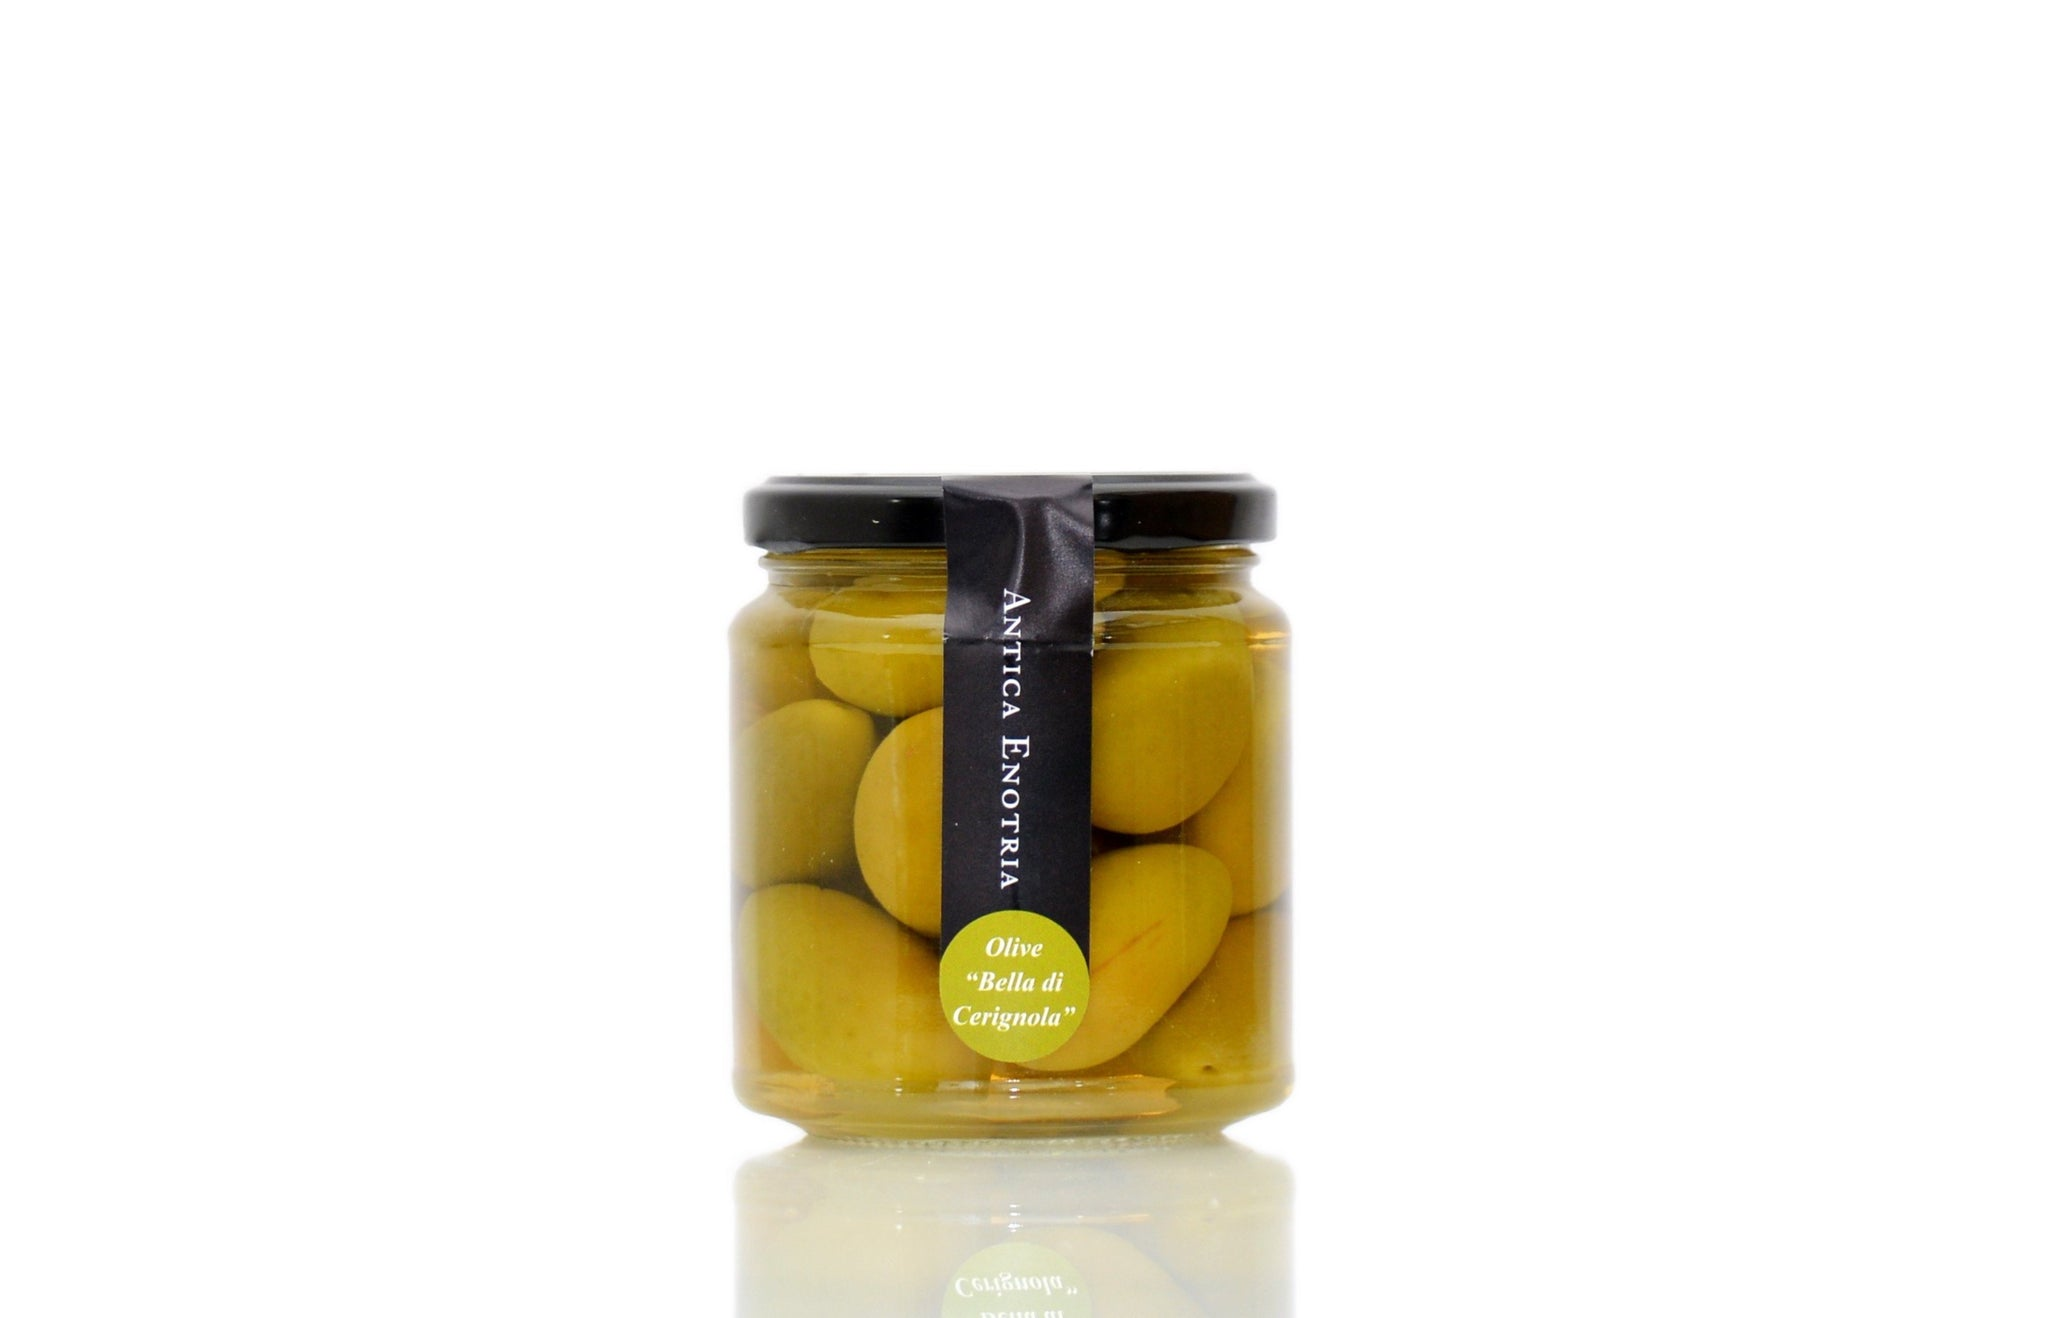 Antica Enotria Organic Olive Bella Cerignola Gigantic Olives - Shop at the Red Beetle